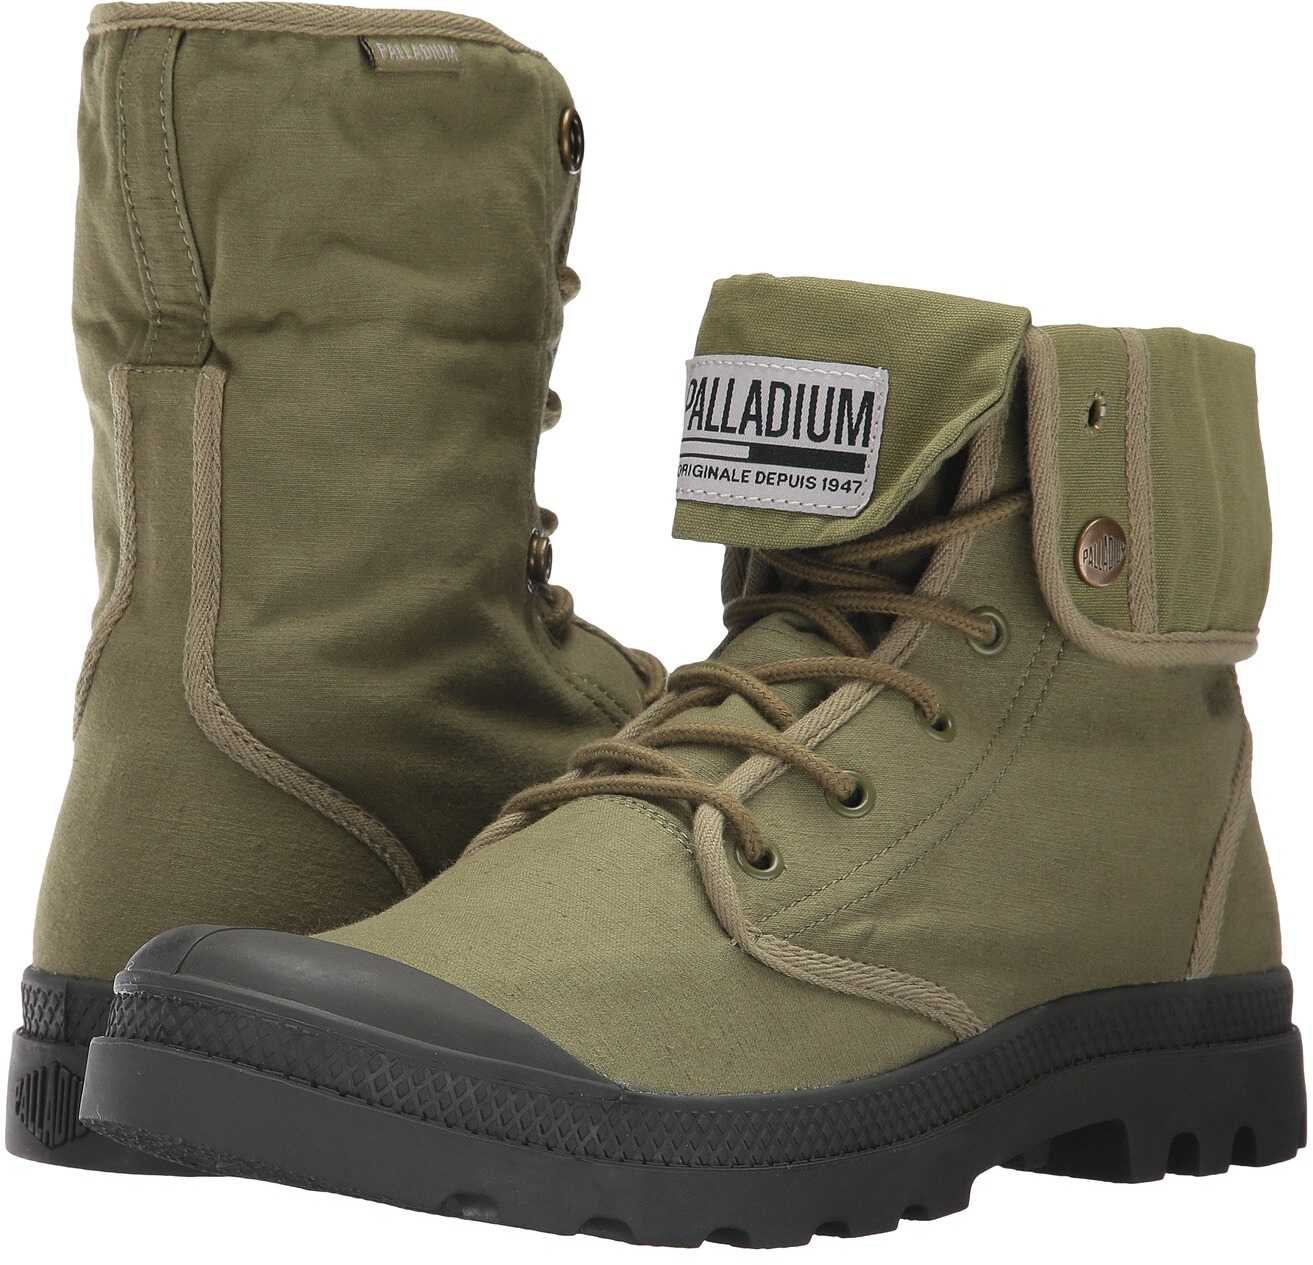 Palladium Baggy Army TRNG Camp Olive Drab/Beluga